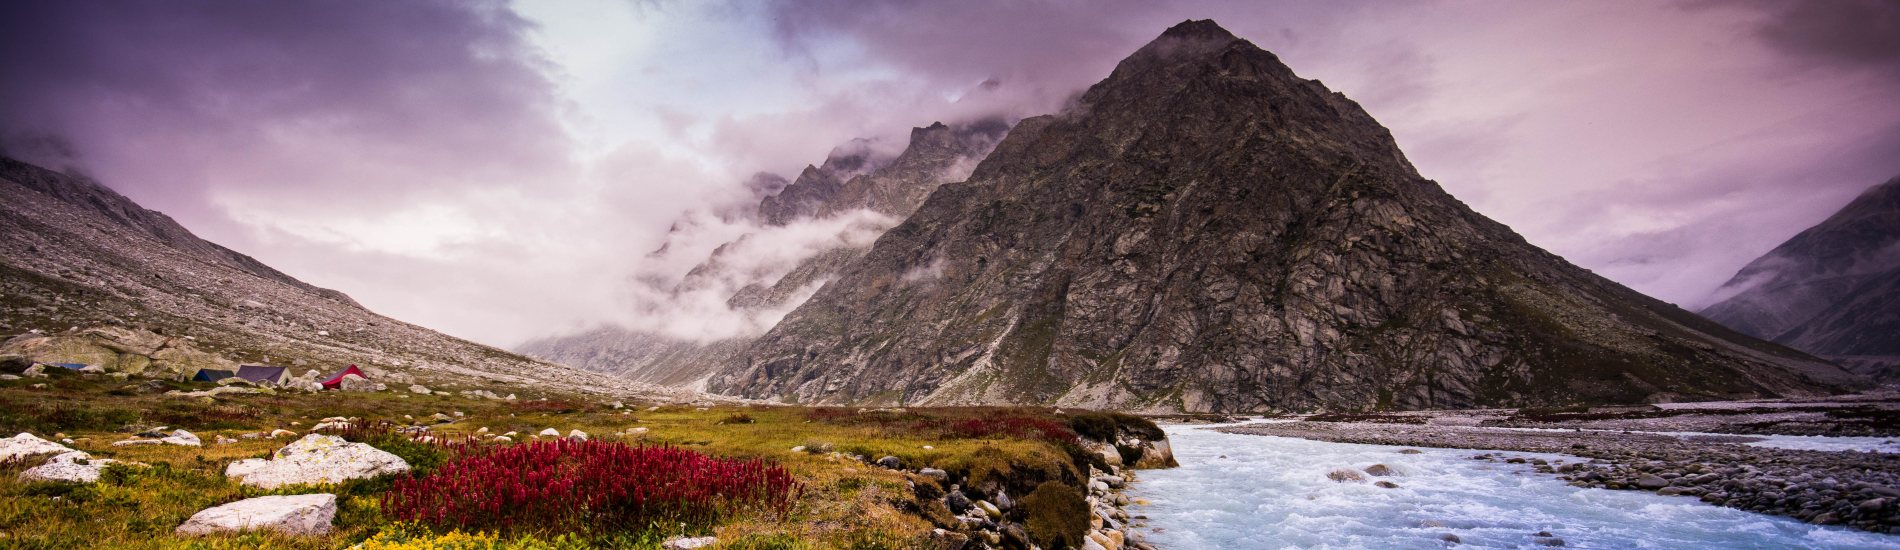 Development of a Glacio-Hydrological Model and IWRM Plan for the Uttarakhand subbasin in India